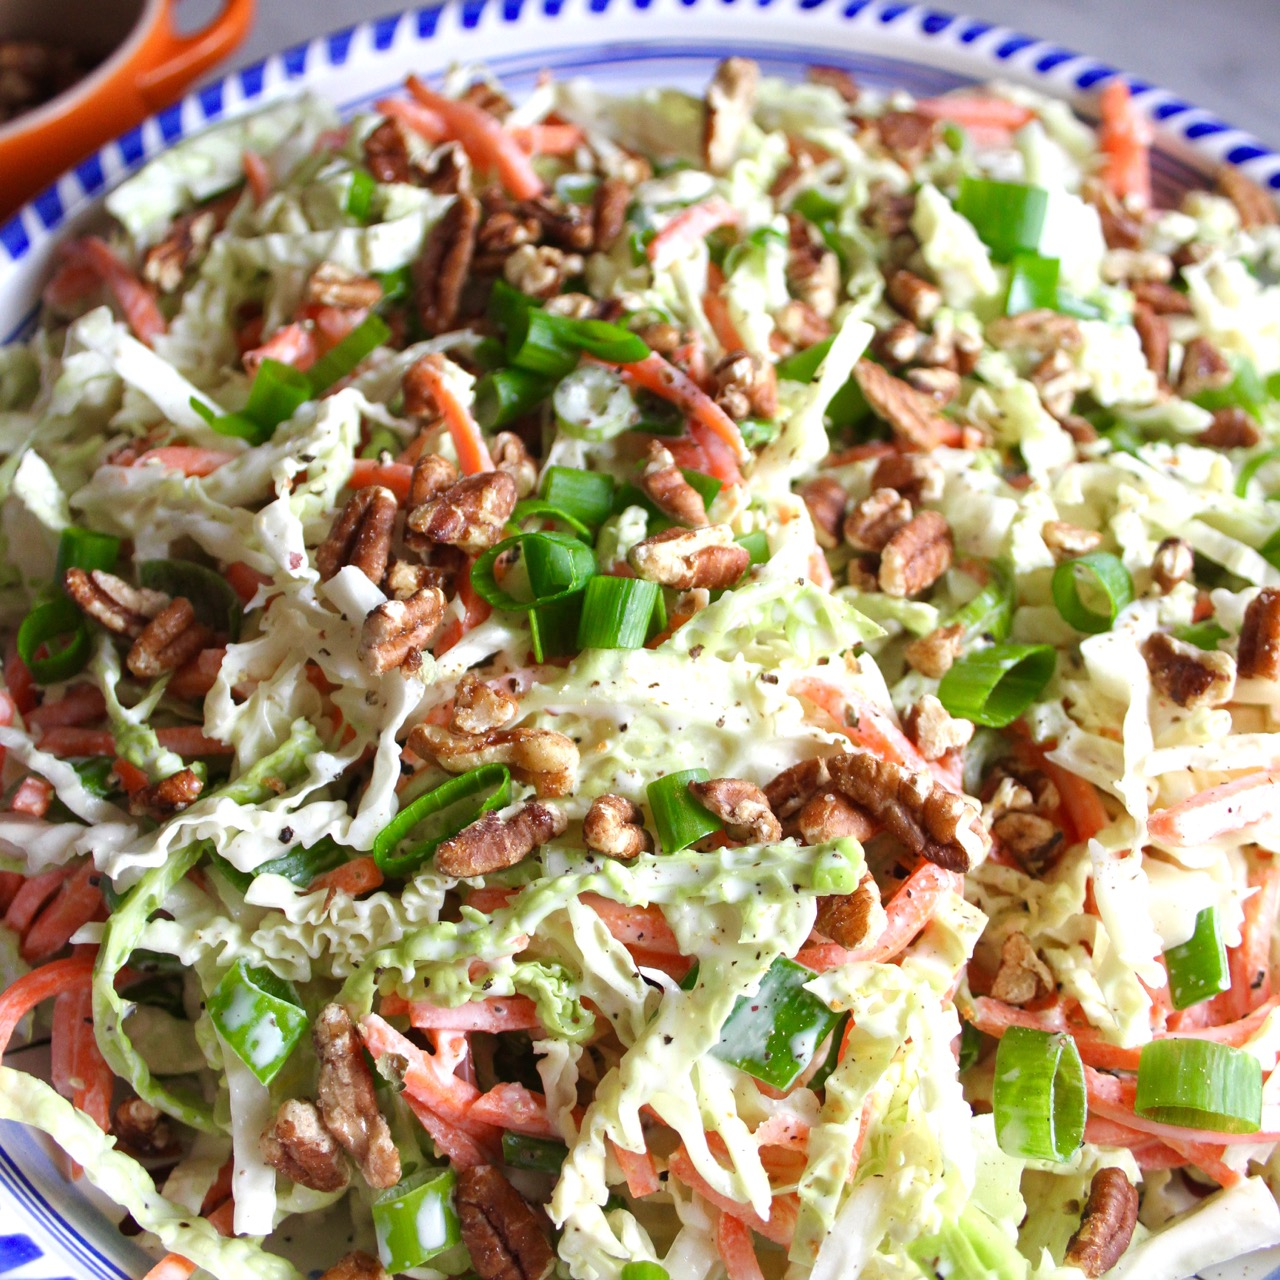 Buttermilk Coleslaw with Toasted Pecans